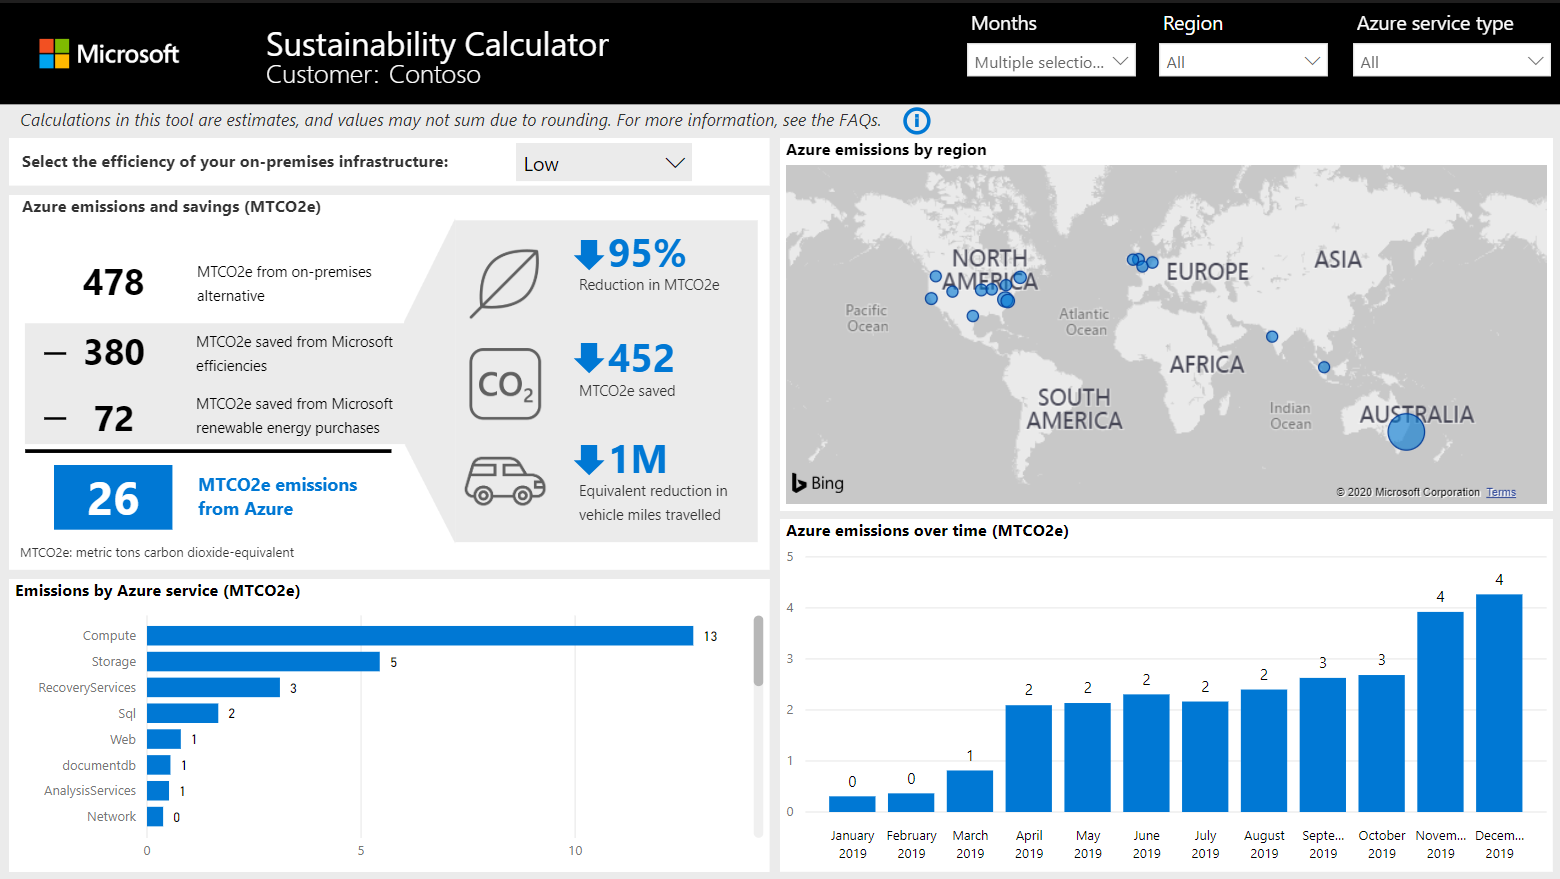 Visualisierung der CO2-Daten im Microsoft Sustainability Calculator